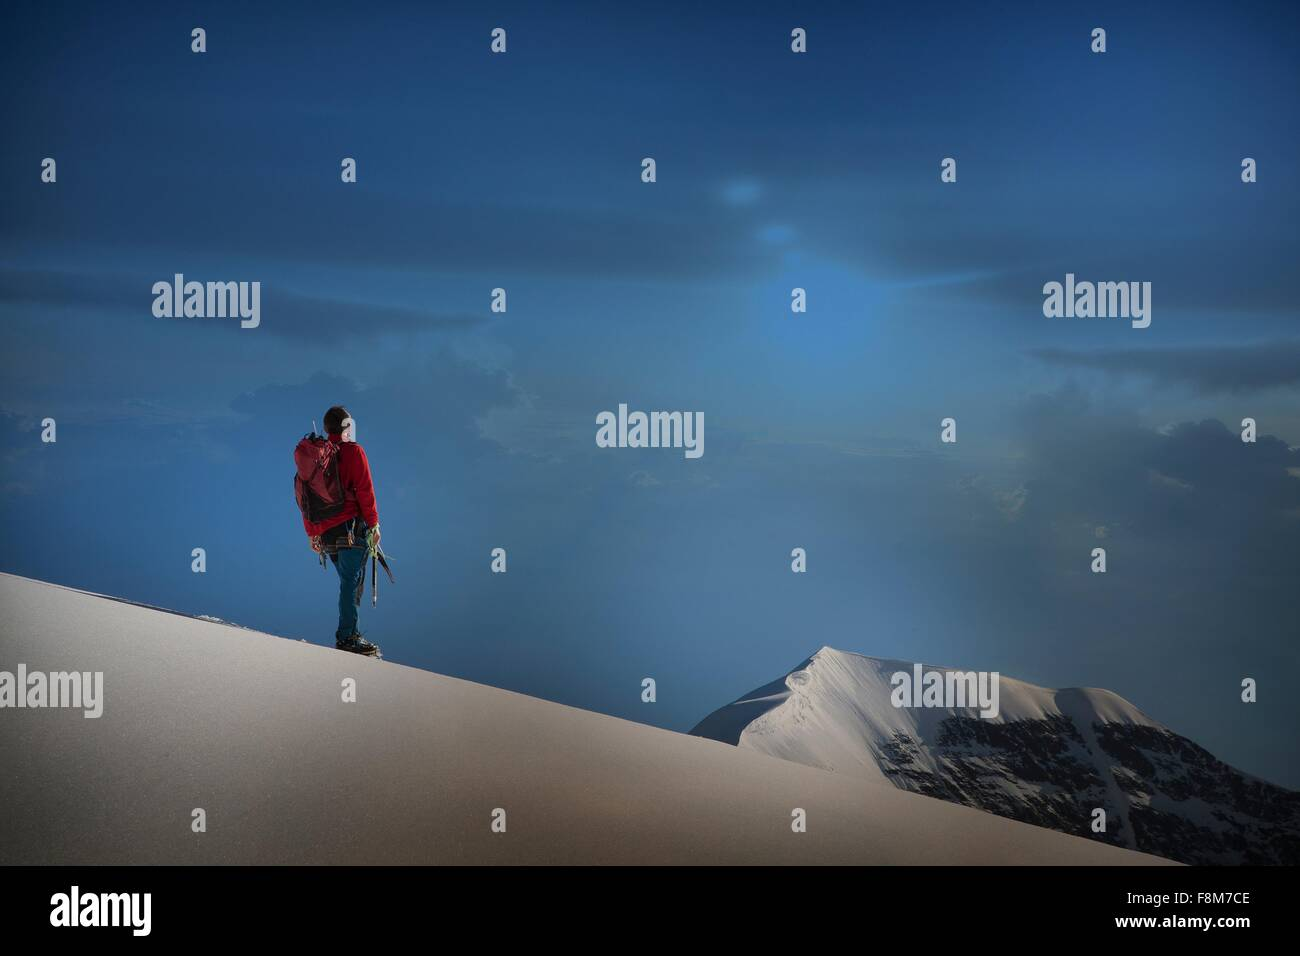 Male climber standing on ridge looking out,  Canton Bern, Switzerland - Stock Image